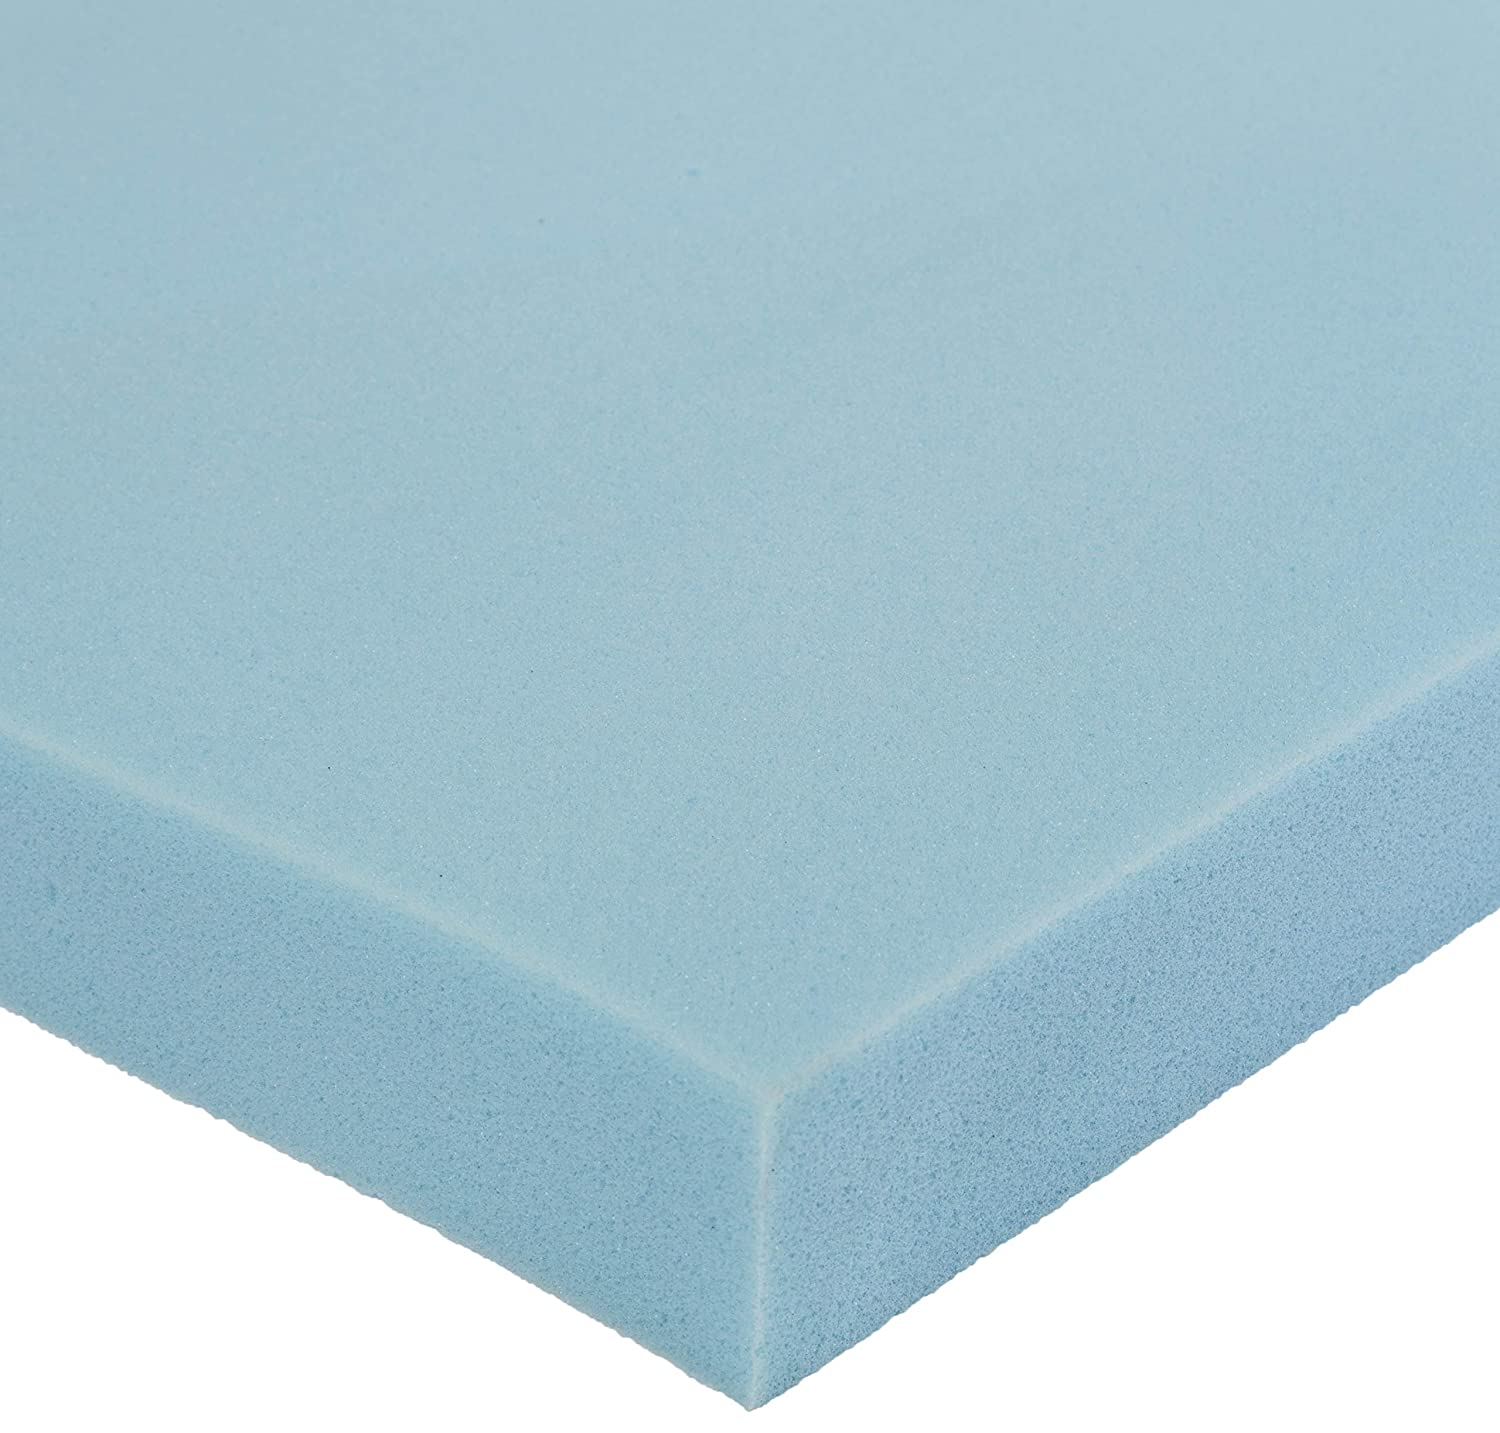 AmazonBasics Cooling Gel-Infused Memory Foam Topper, CertiPUR-US Certified - 2-Inch, King